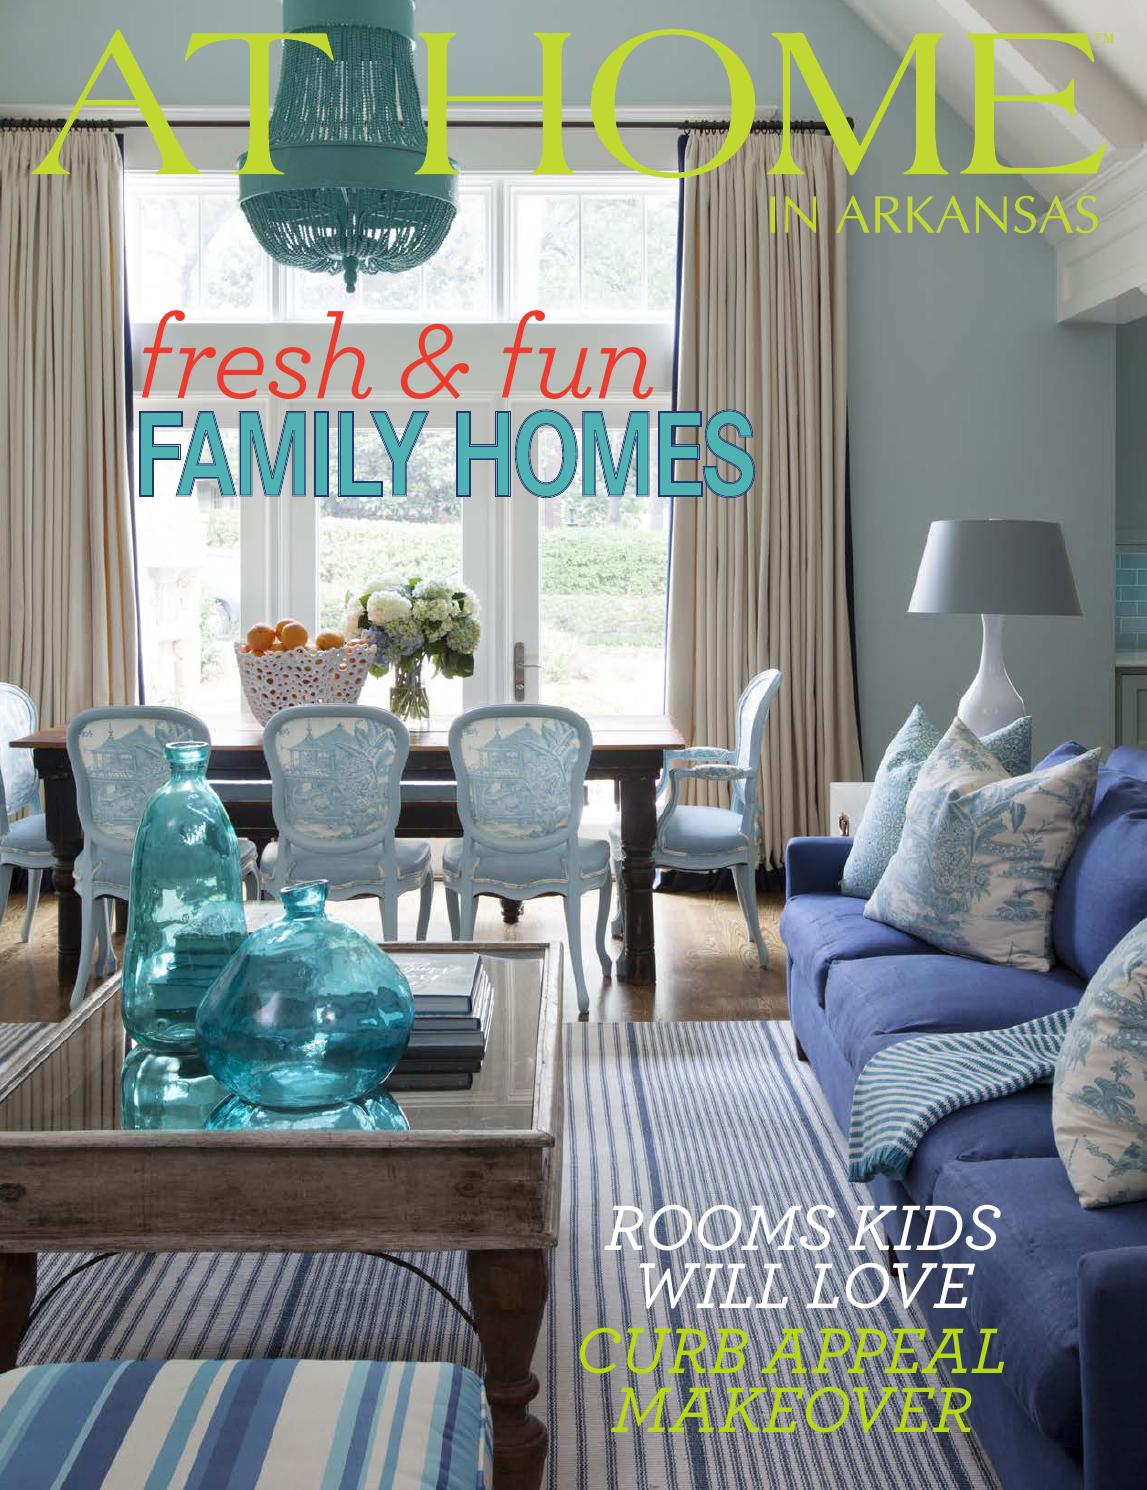 At Home In Arkansas August 2014 By Network Communications Inc Issuu